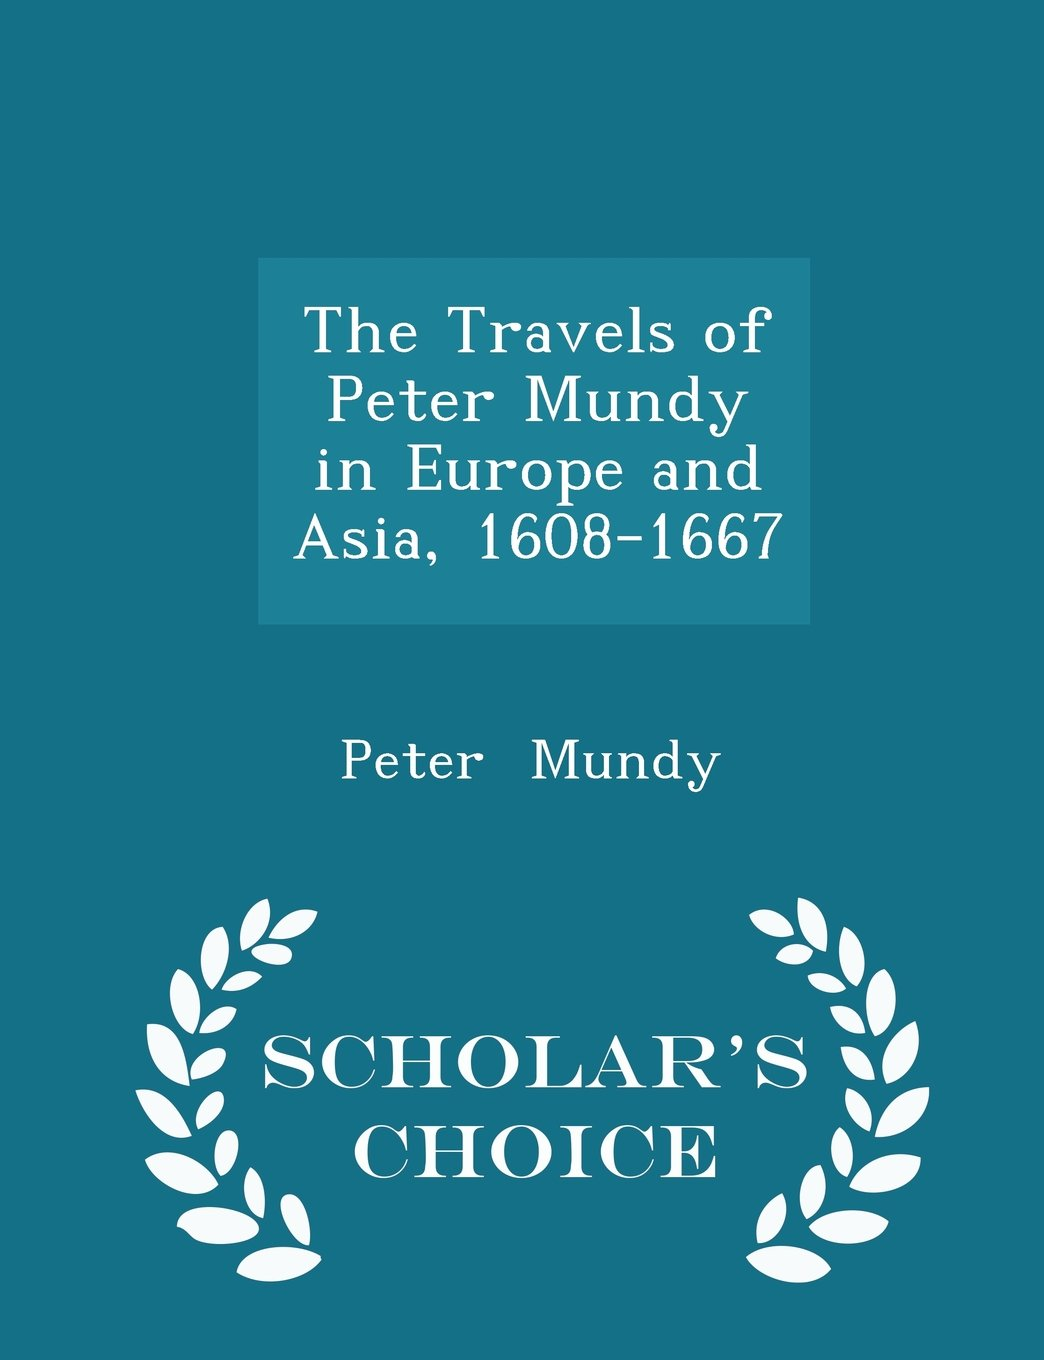 Download The Travels of Peter Mundy in Europe and Asia, 1608-1667 - Scholar's Choice Edition ebook